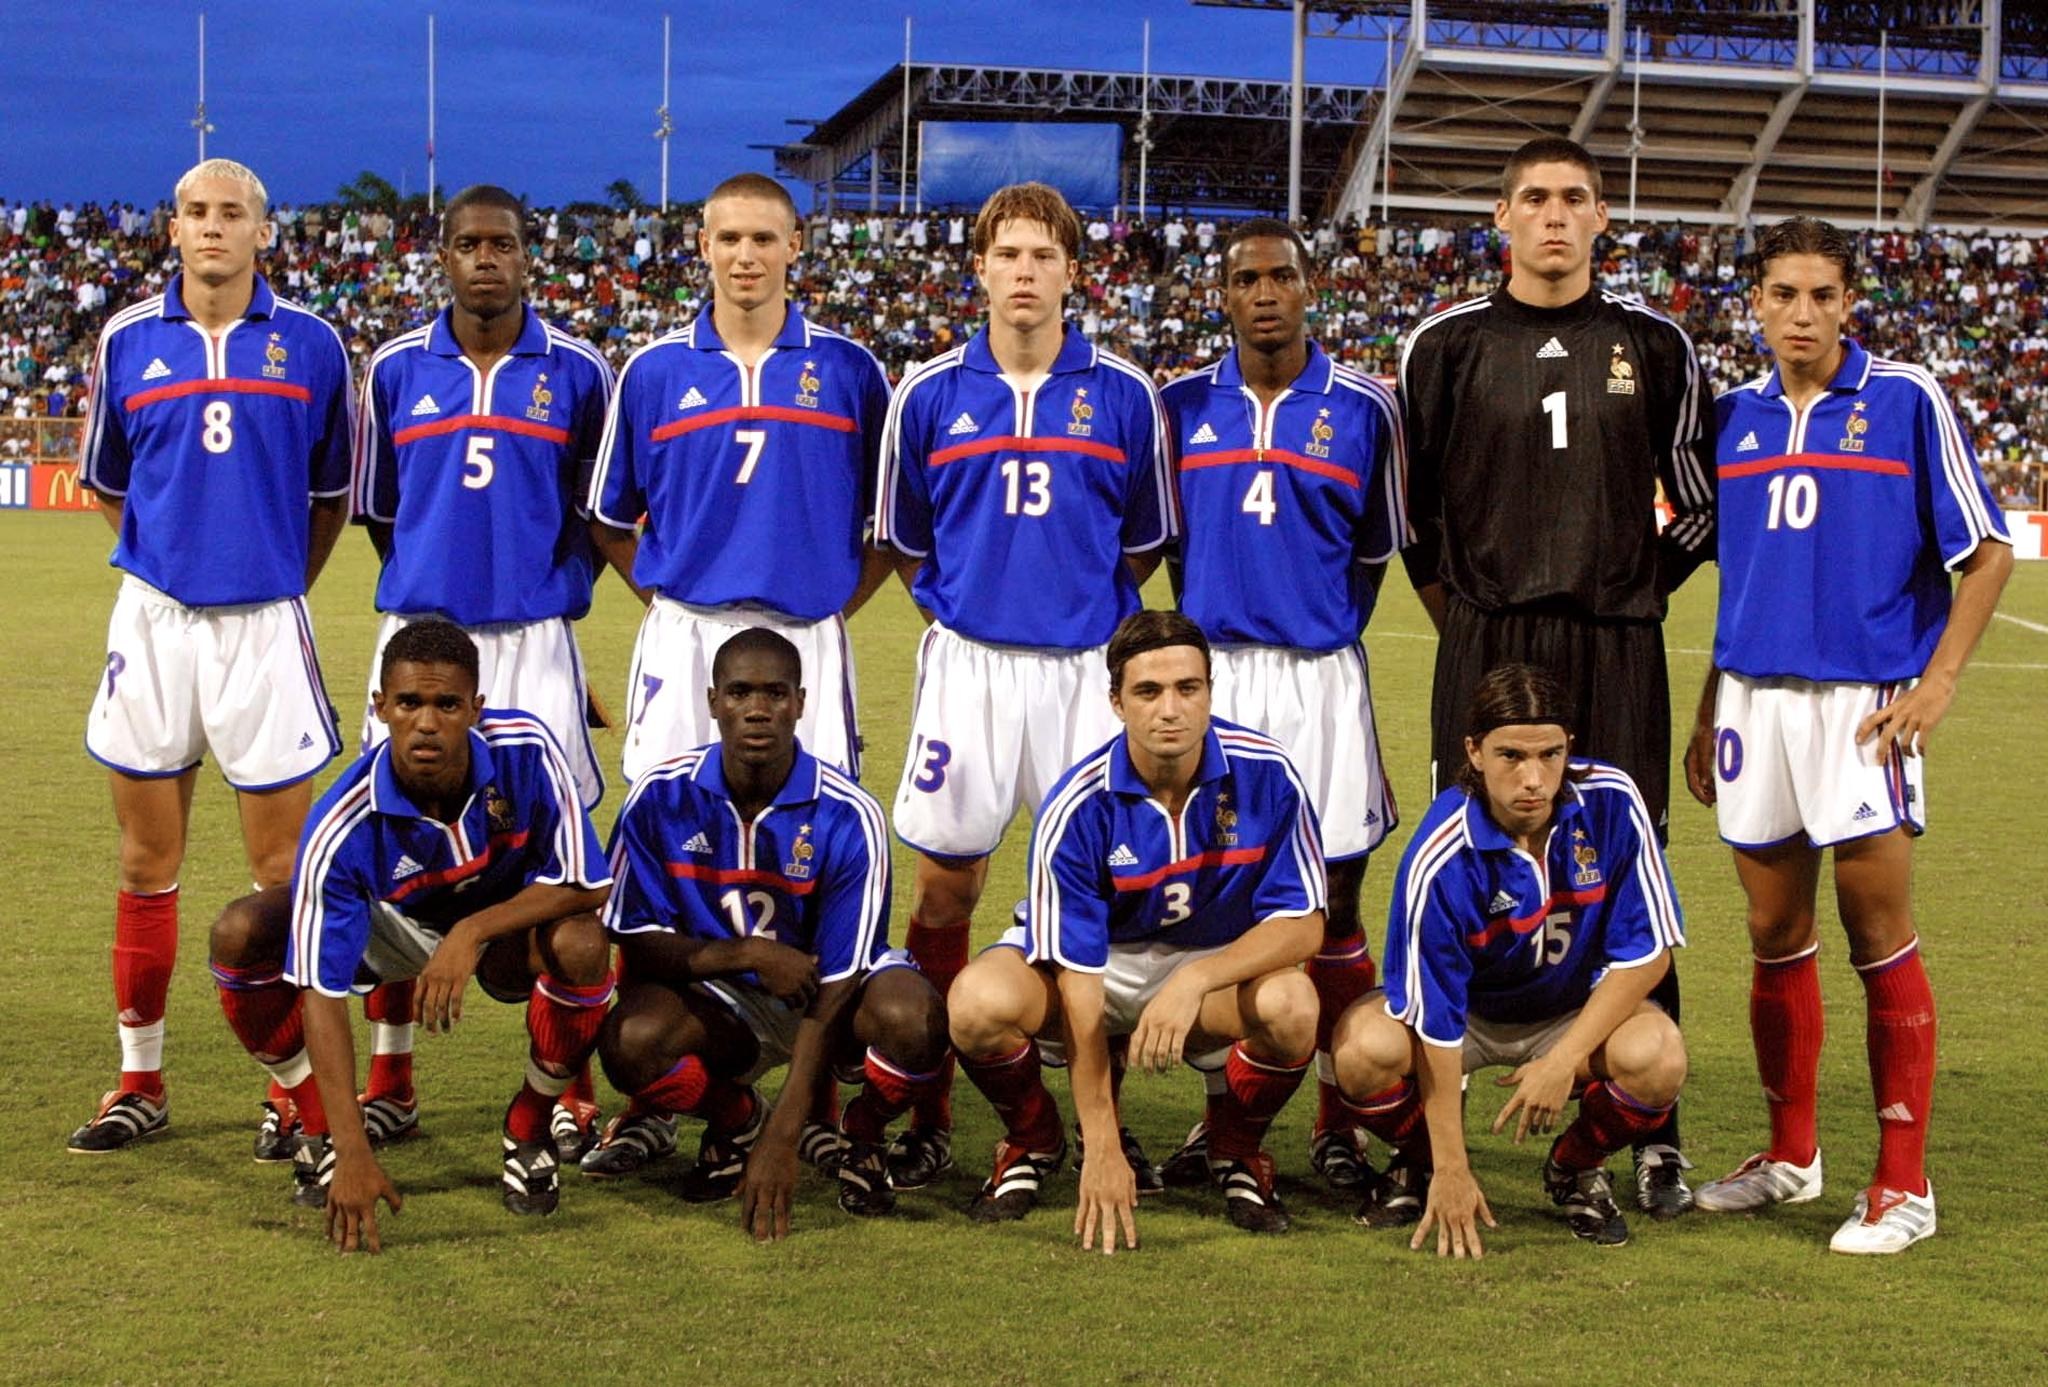 The French team that beat Nigeria in the final of the 2001 U-17 World Cup (Image: AFP)